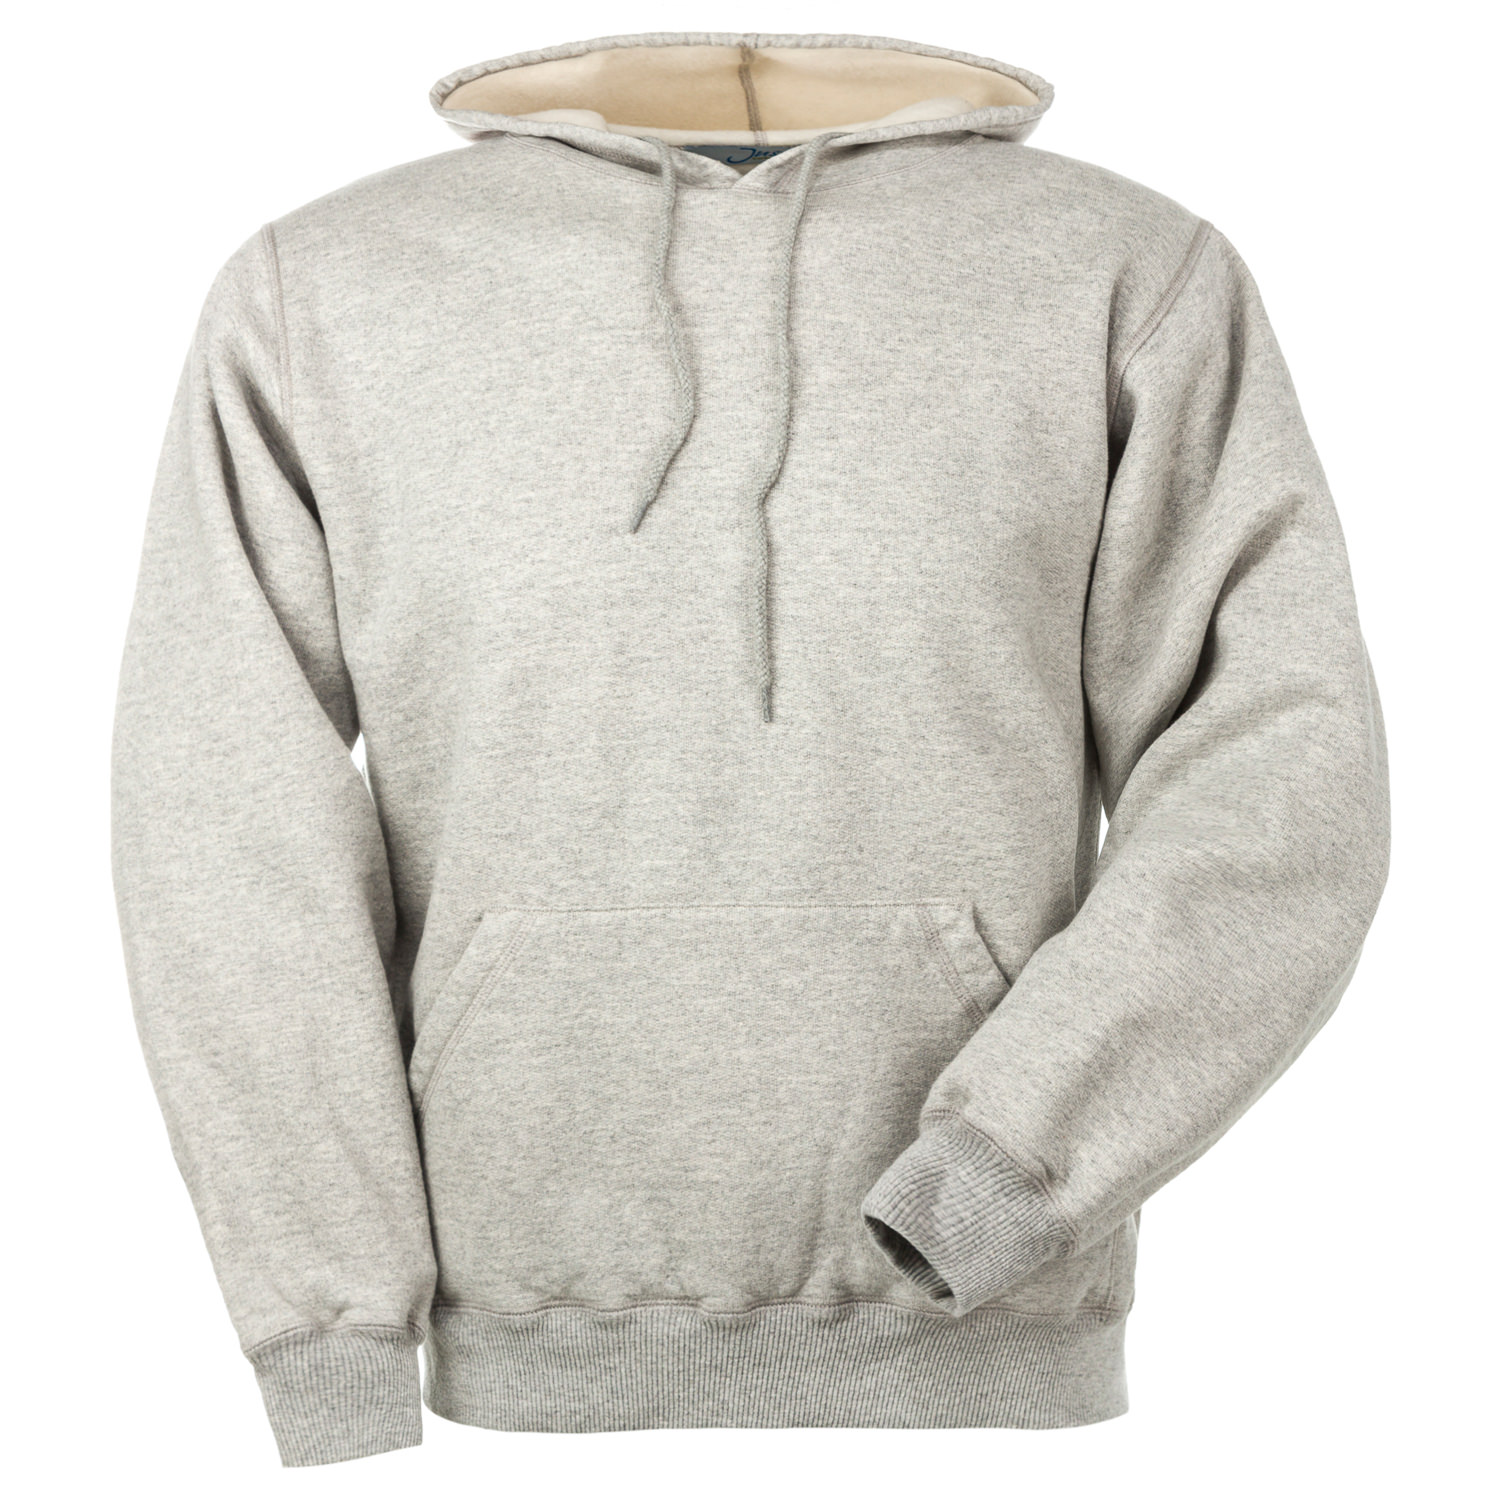 Hooded Pullover Gray Mix 95% Cotton